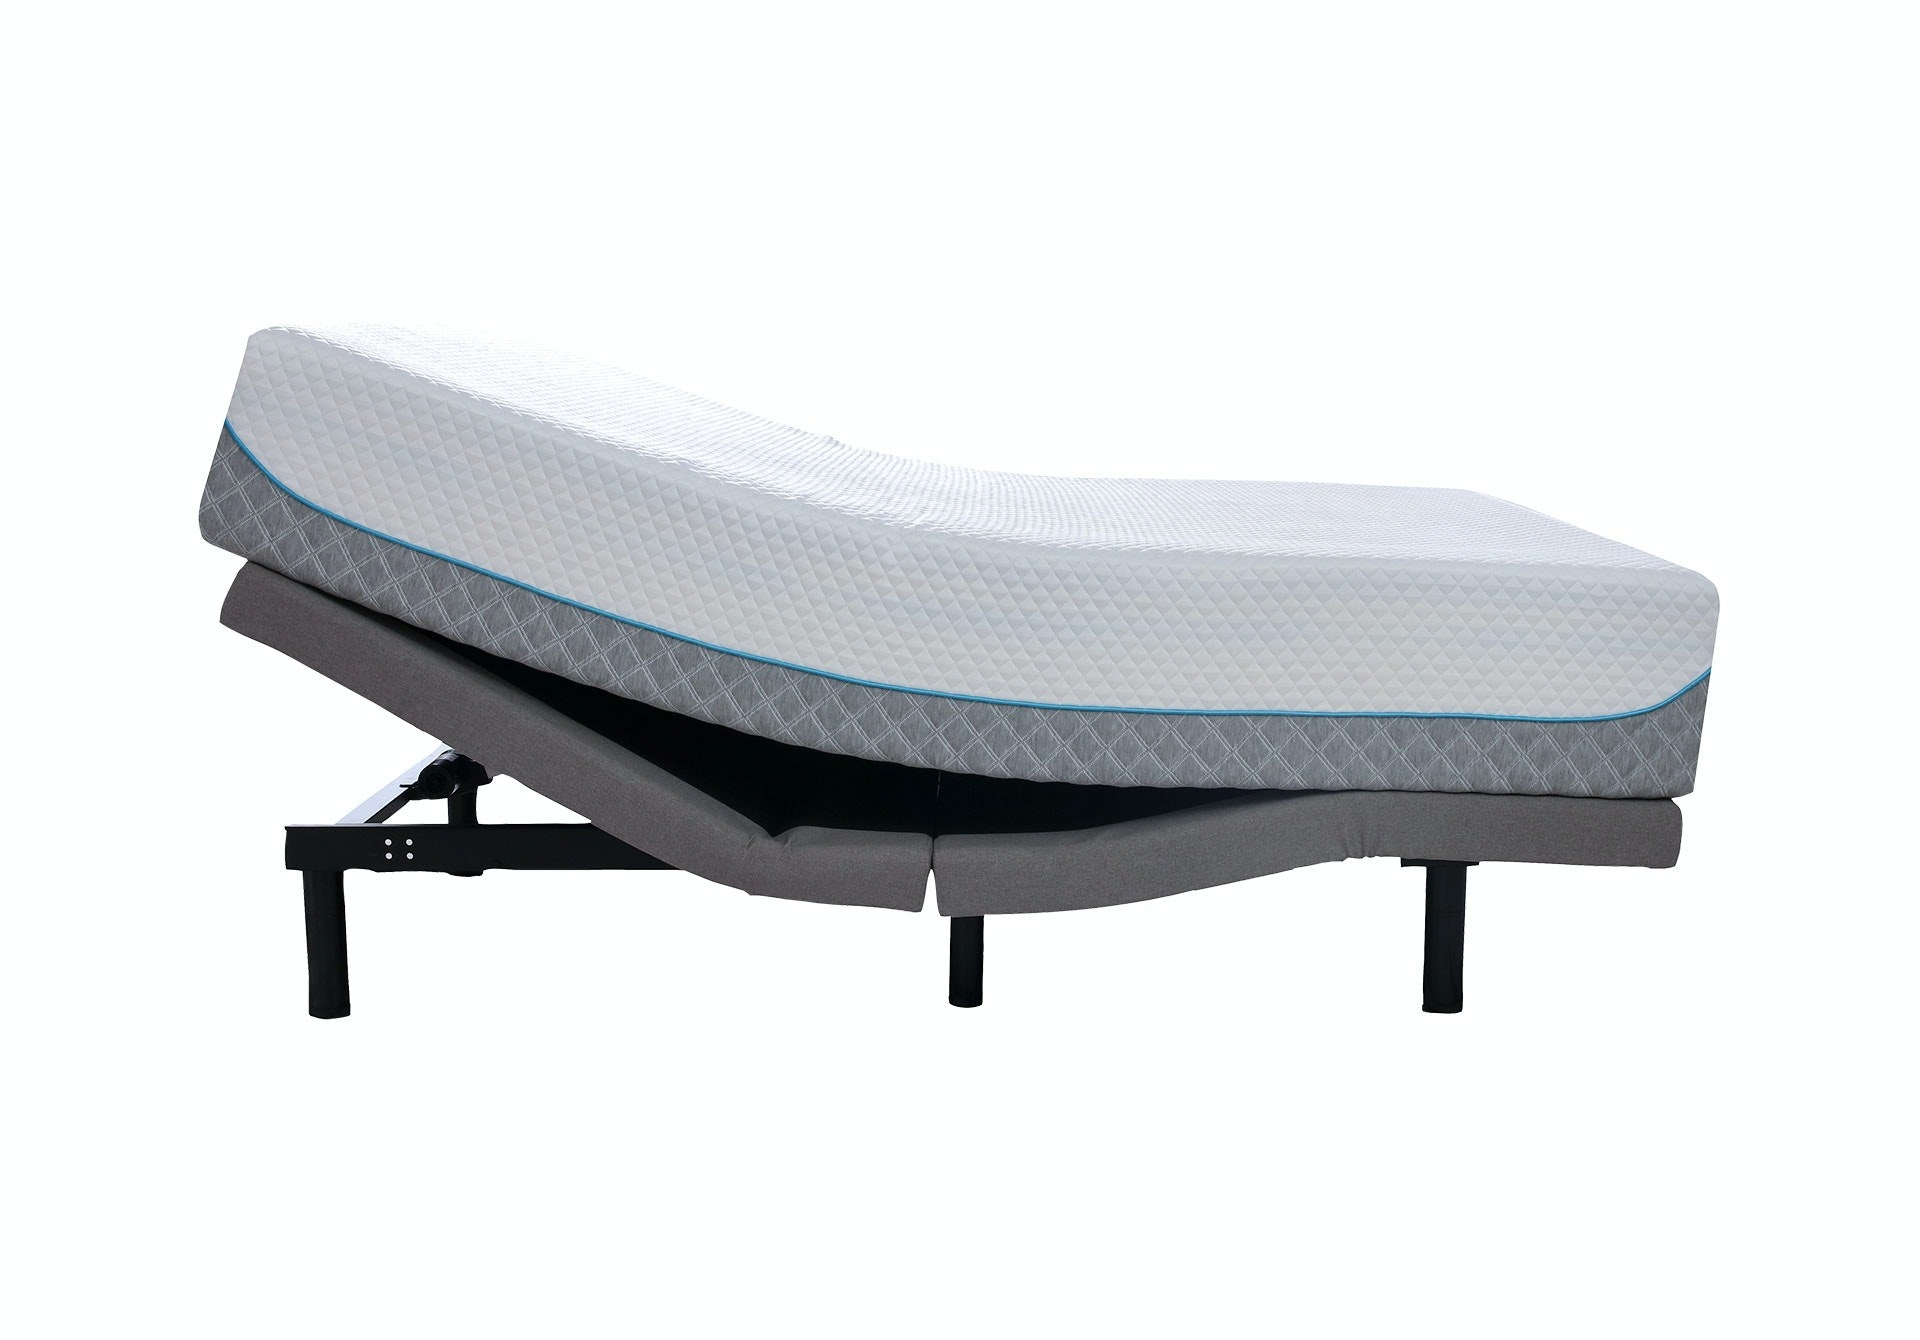 Idle Sleep Premium Adjustable Base with back risen and a mattress on top of it